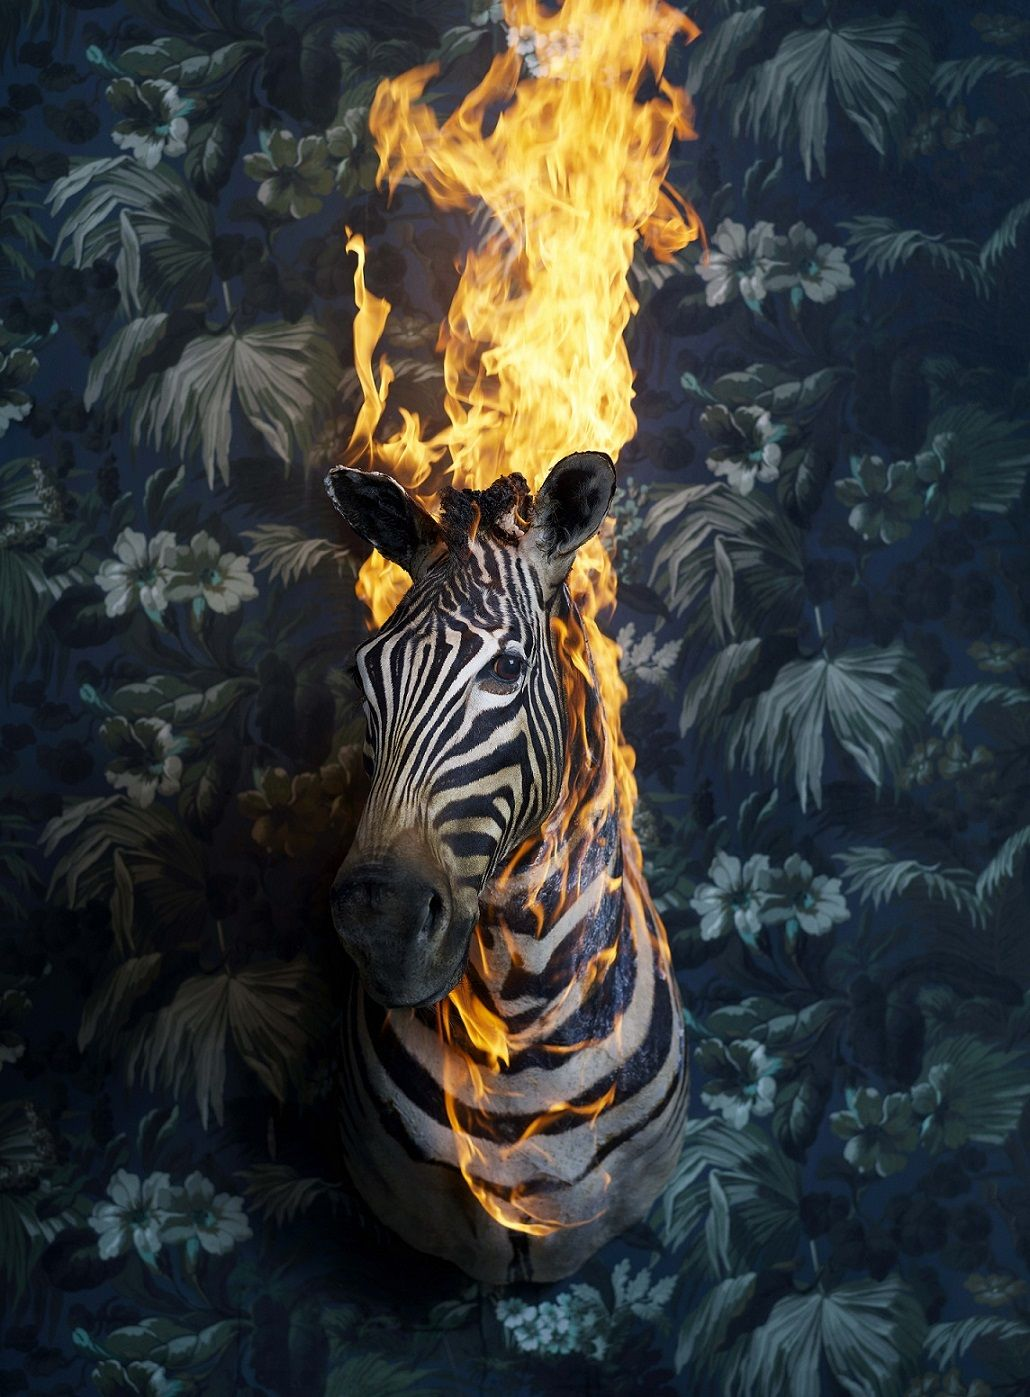 Zebra, Residence of Impermanence series - Christian Houge - Photography